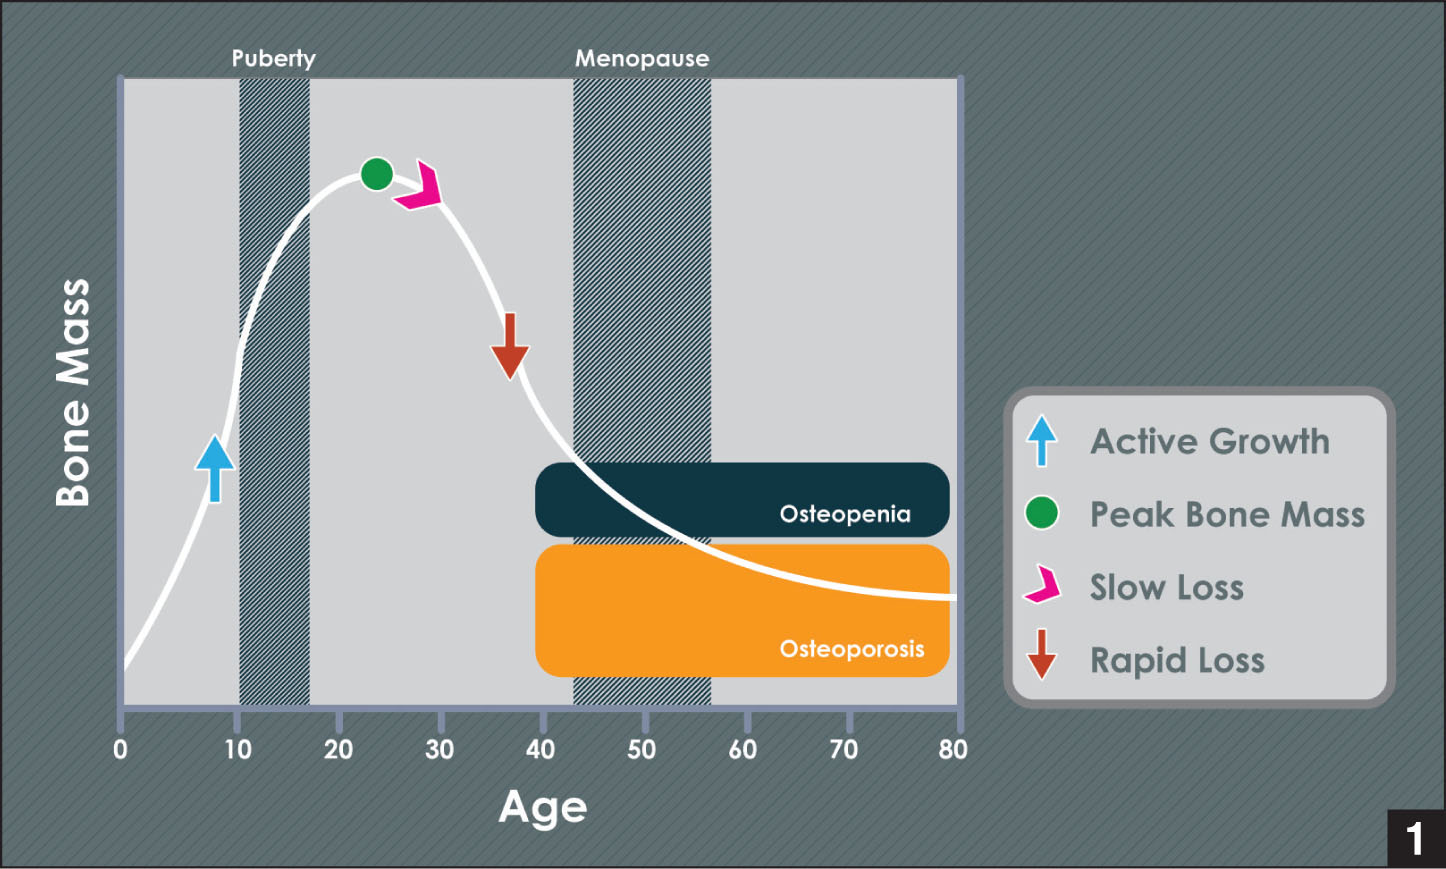 Bone mass life cycle. During the normal bone mass life cycle, a steady increase in bone mass occurs through puberty that typically peaks near the third decade of life. Once it has peaked, bone mass is subject to a slow loss phase followed by a rapid loss phase. This decrease in bone mass commonly results in osteopenic bone and then osteoporotic bone, particularly in menopausal women. Adapted from Ilich and Kerstetter.1